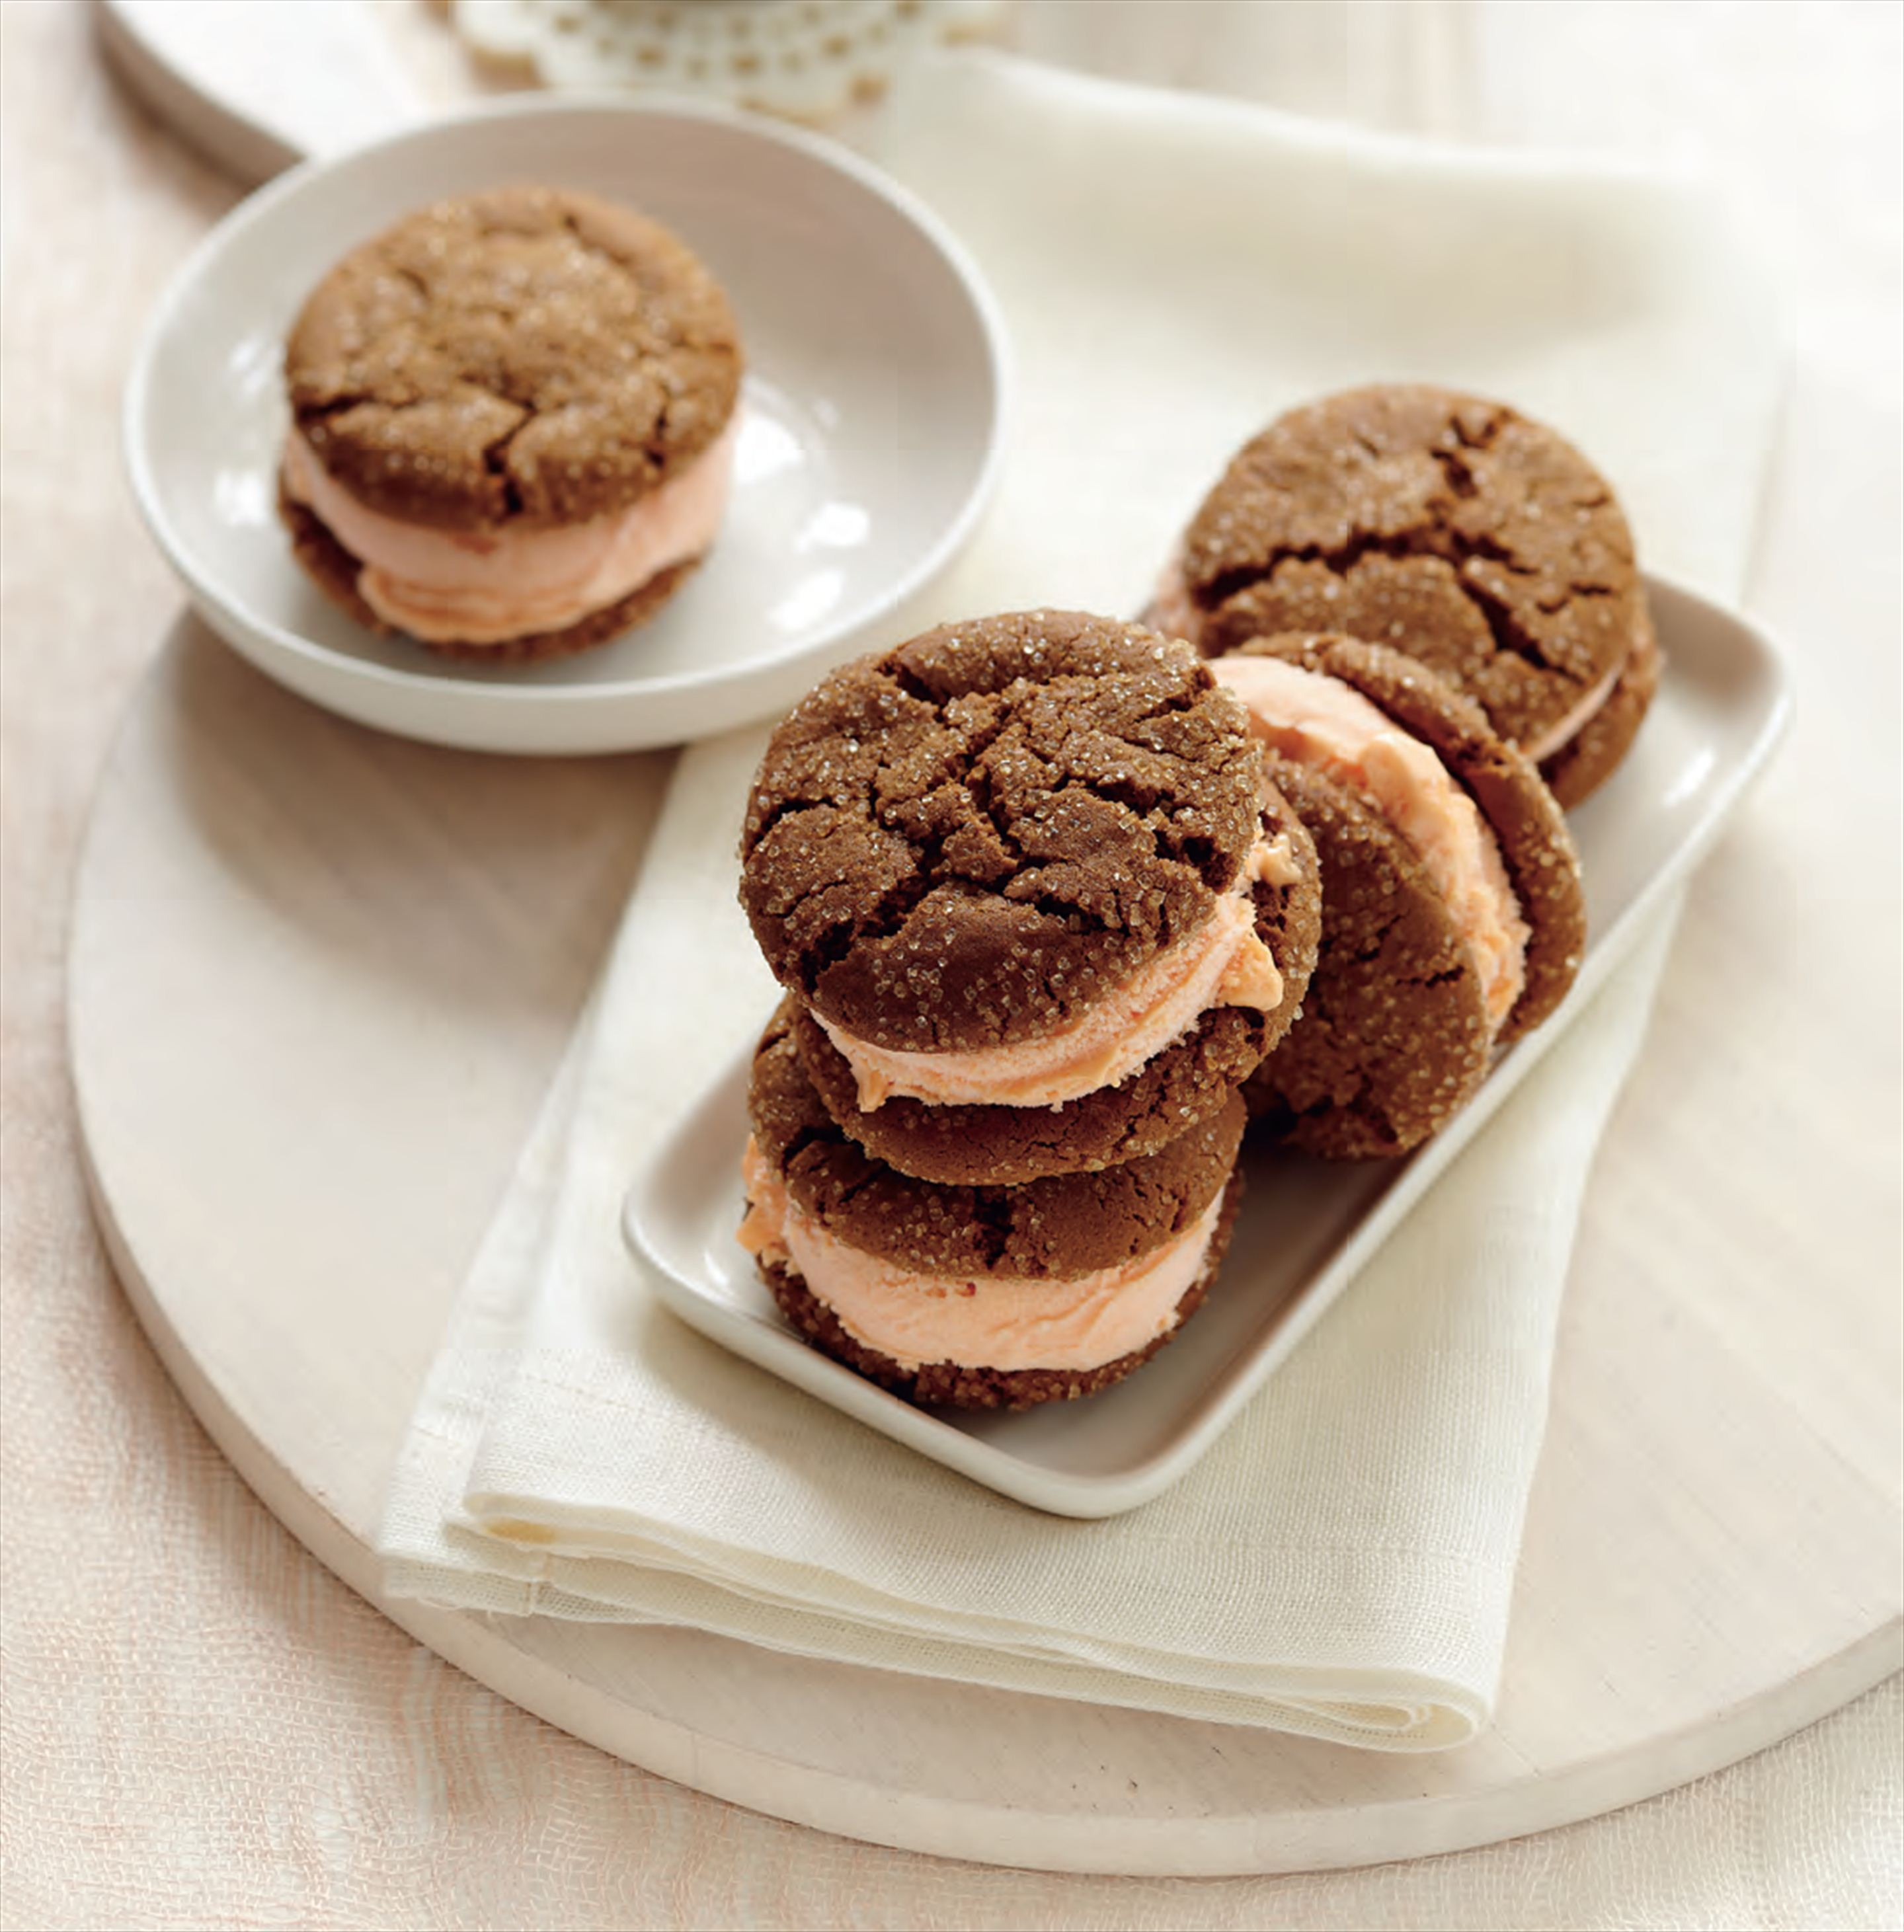 Gingersnap and peach ice-cream sandwiches